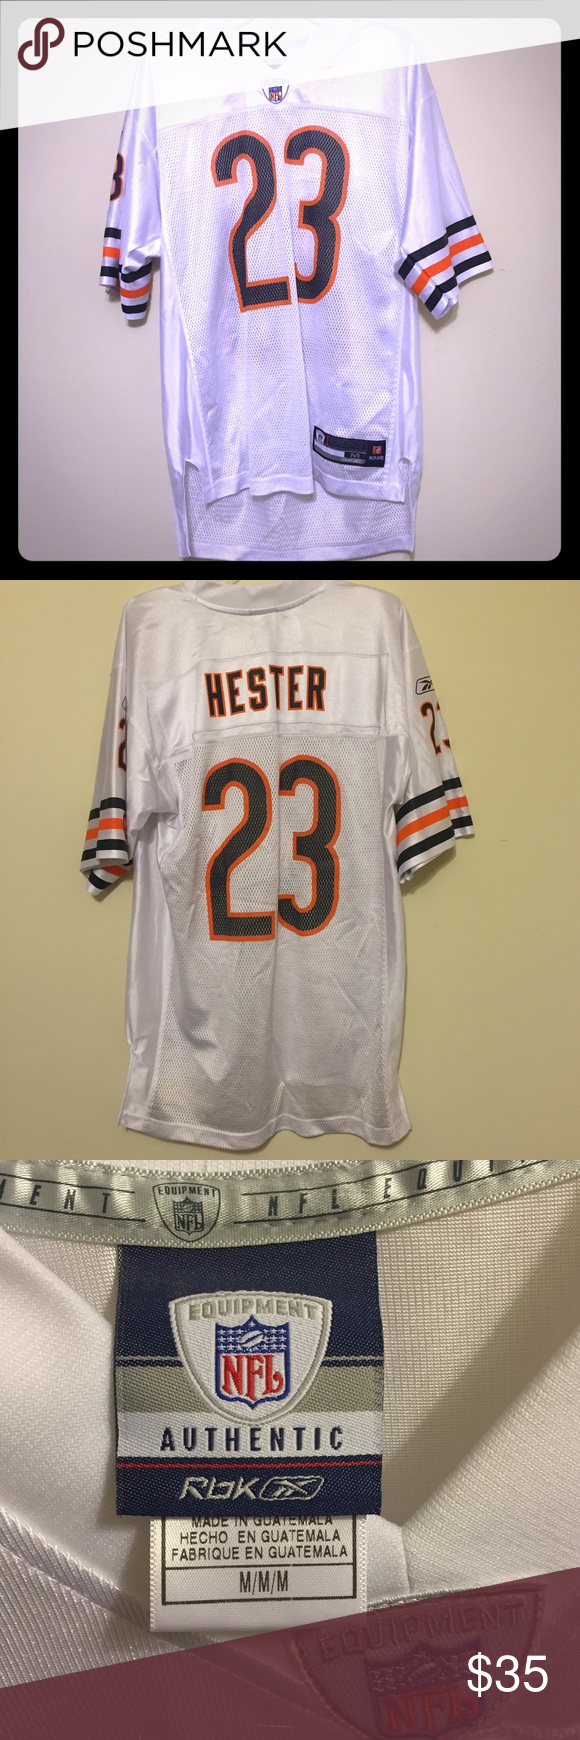 REEBOK CHICAGO BEARS HESTER AUTHENTIC WHITE JERSEY REEBOK CHICAGO BEARS DEVIN HESTER AUTHENTIC WHITE JERSEY Color: White Material: Made of 100% Polyester, Knit/mesh,Officially licensed Size: Medium NFL  Perfect condition  All reasonable offers accepted   Smoke and pet free home Reebok Shirts